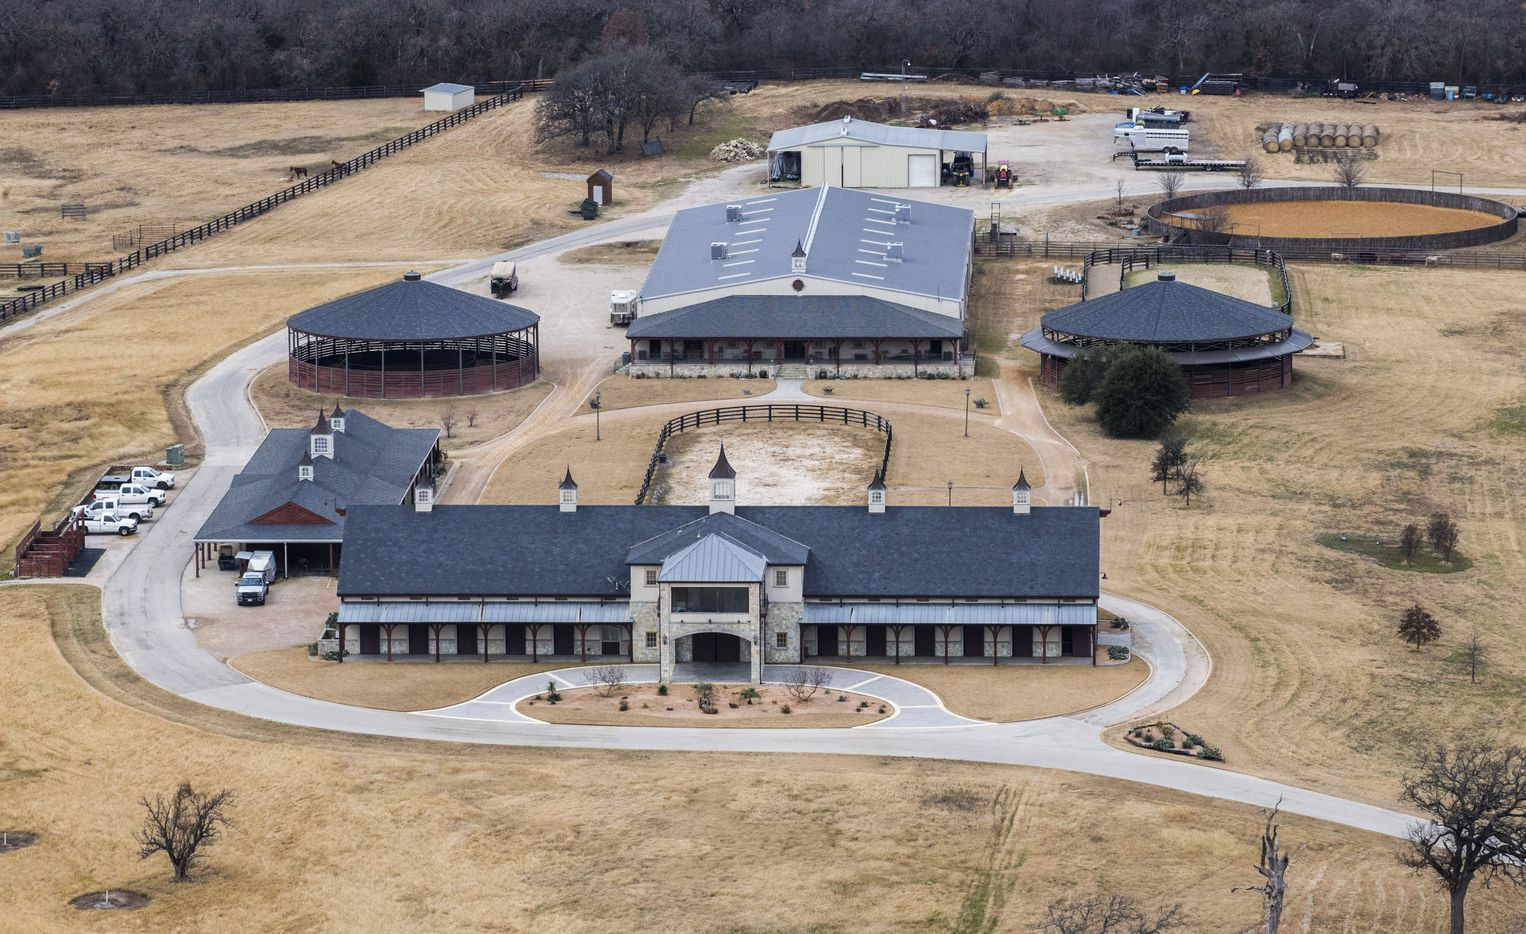 A ranch owned by ExxonMobil CEO Rex Tillerson as photographed from a helicopter on Wednesday, January 4, 2017 in Bartonville, Texas.